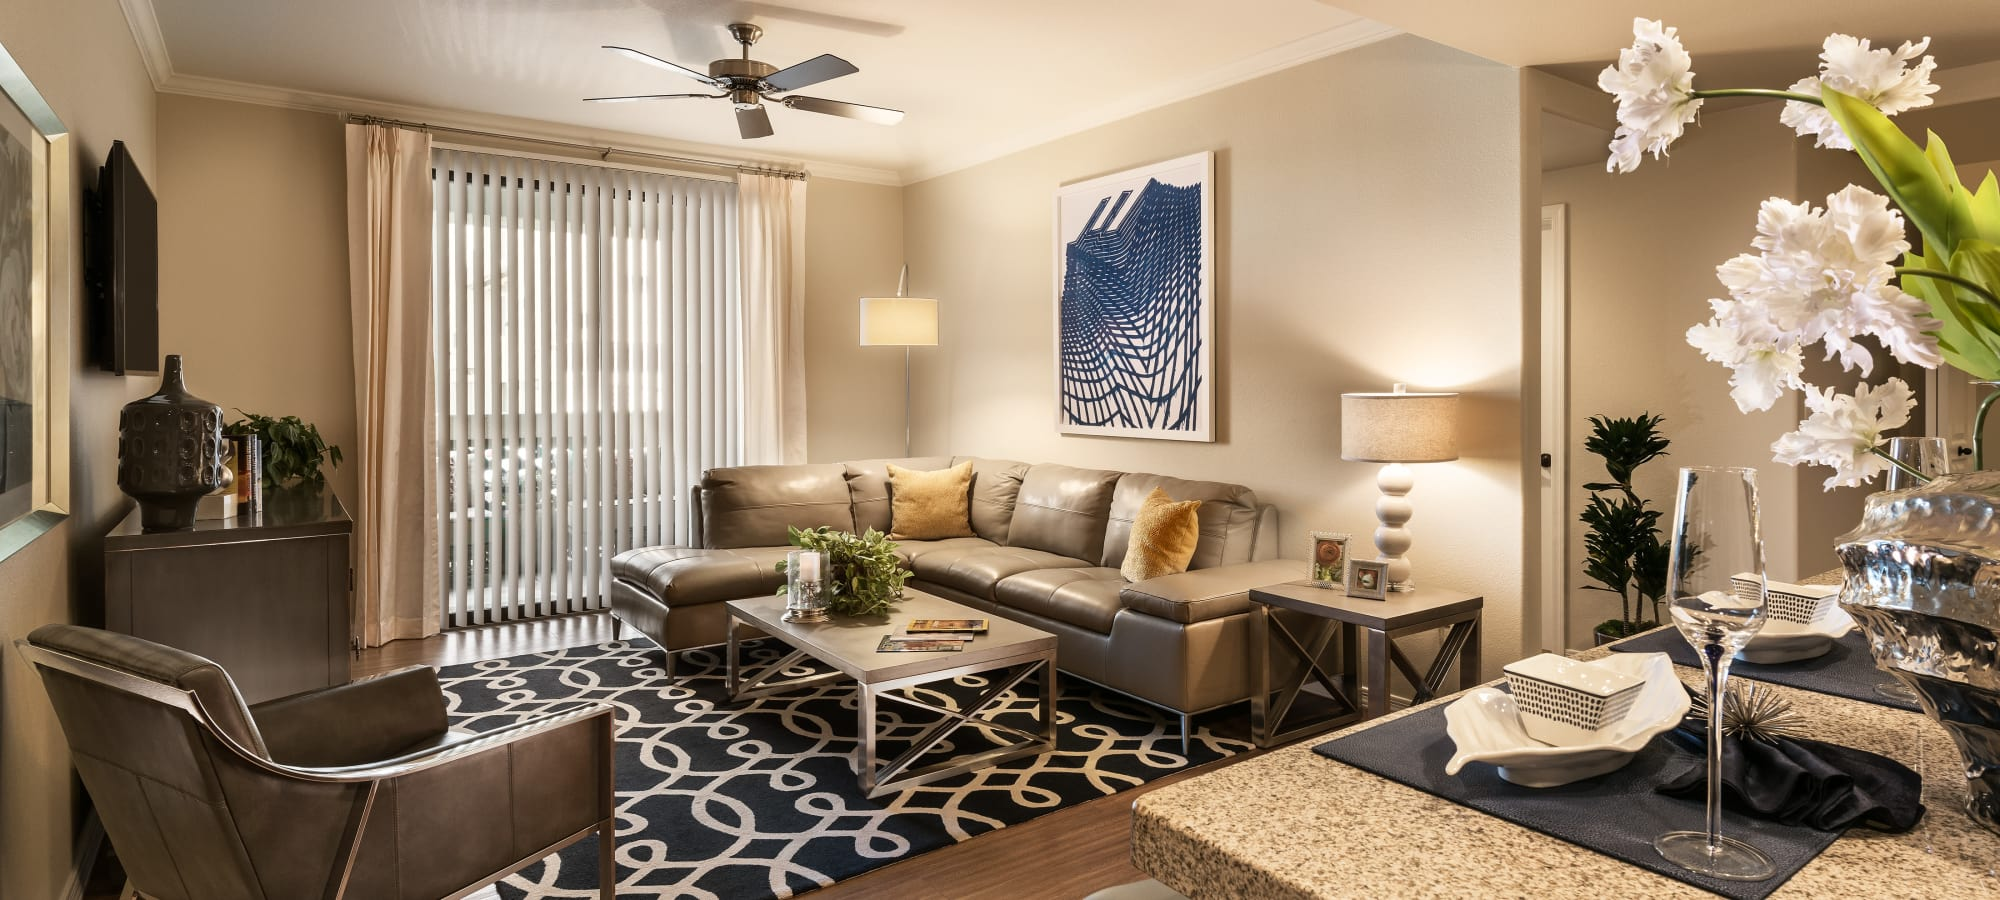 Model living room with ceiling fan at San Sonoma in Tempe, Arizona